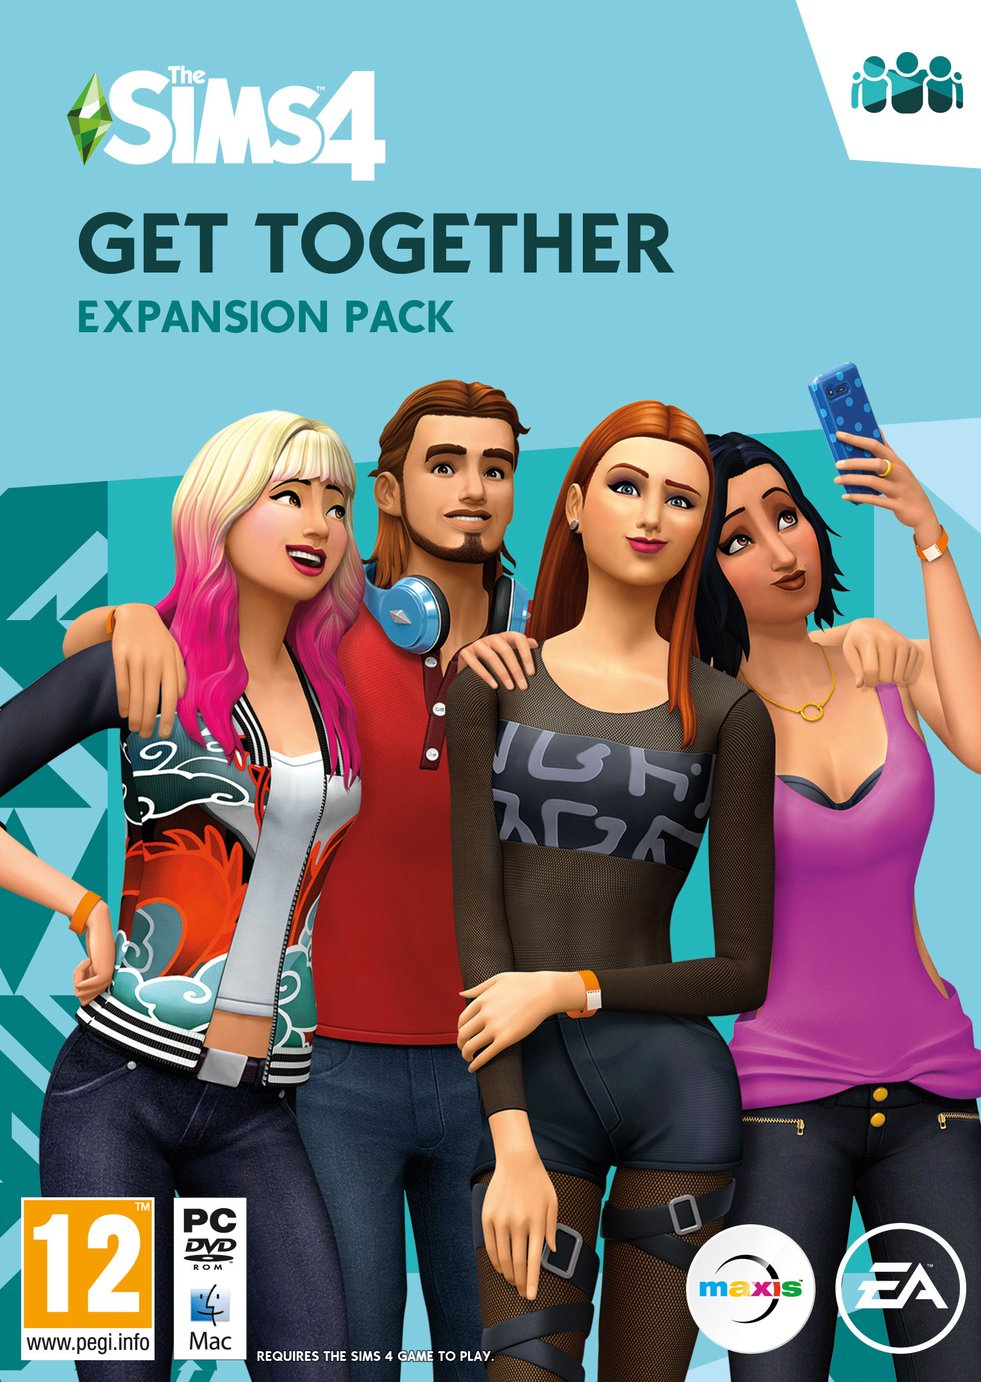 The Sims The Sims 4 - Get Together Expansion Pack PC